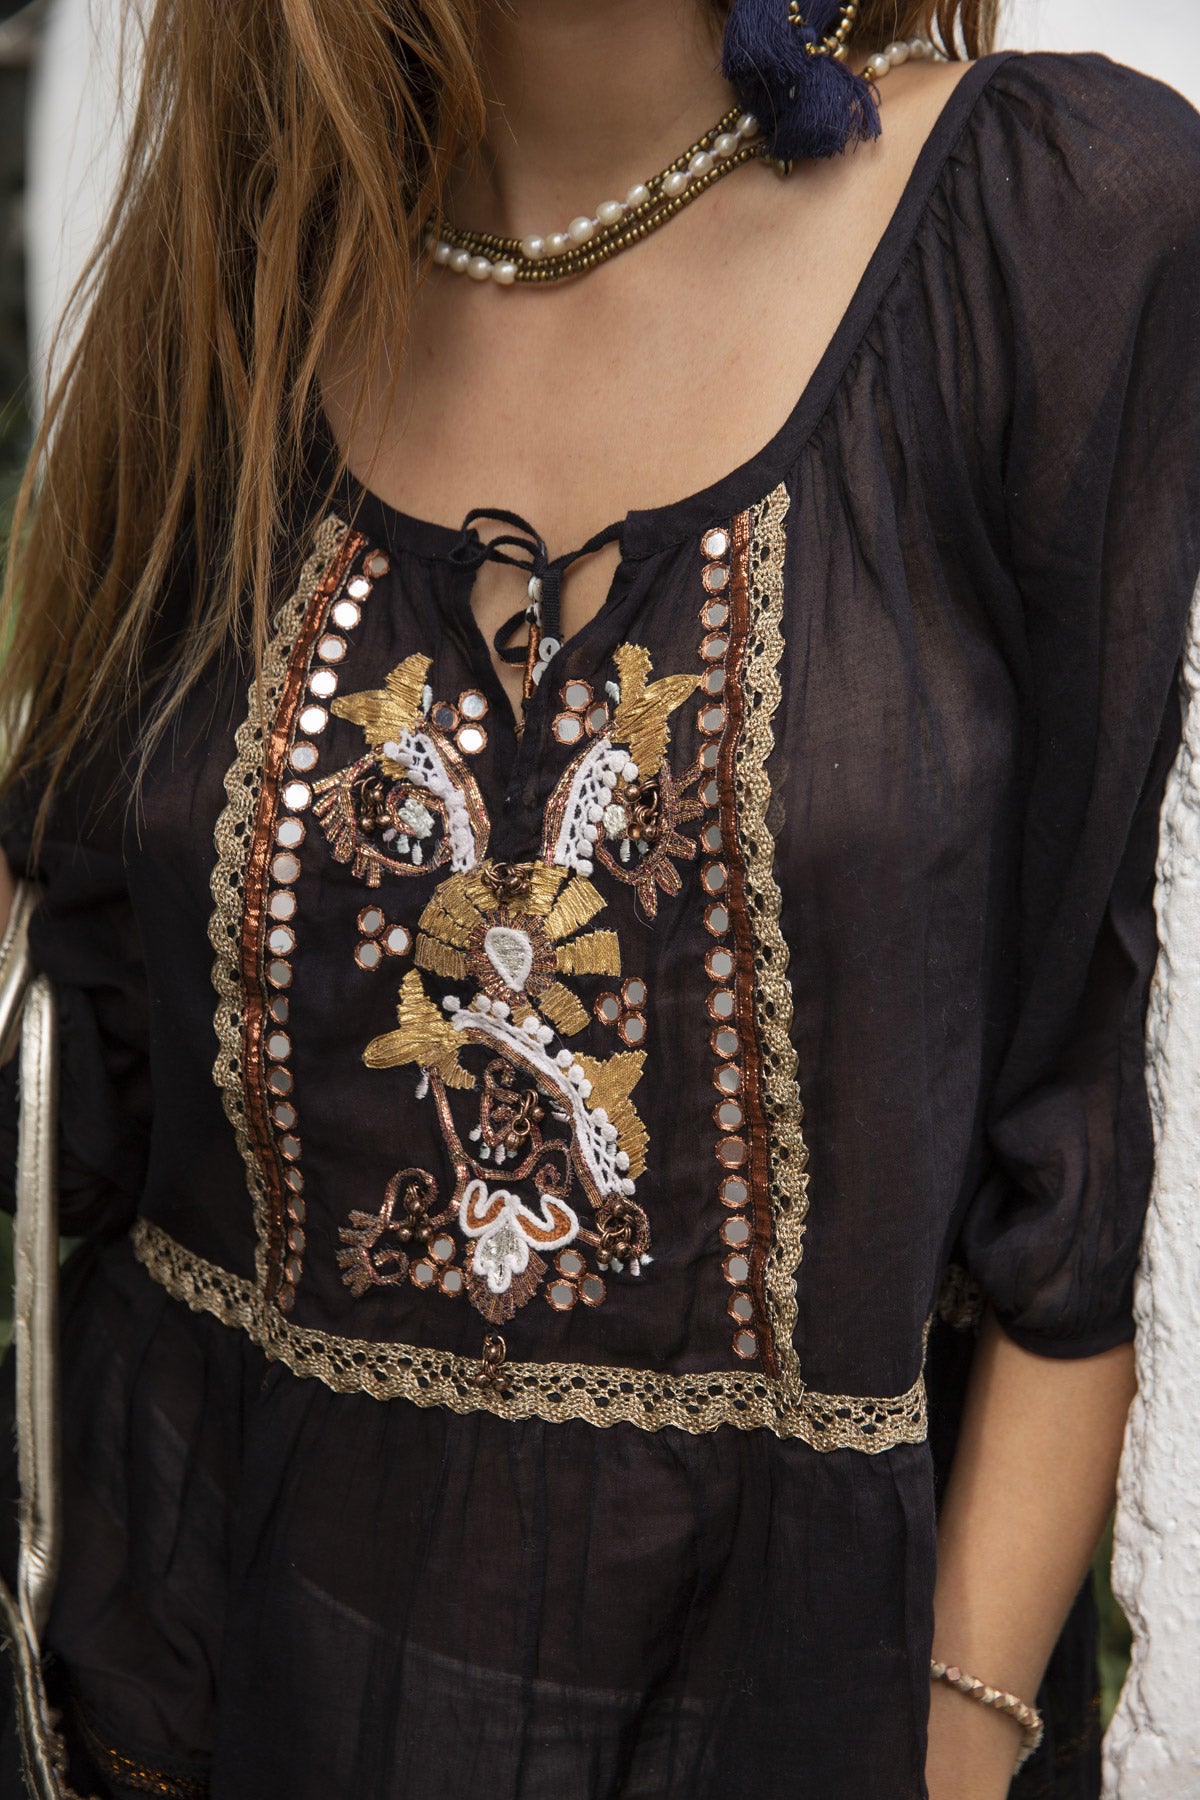 Boho style short black dress with embroidery